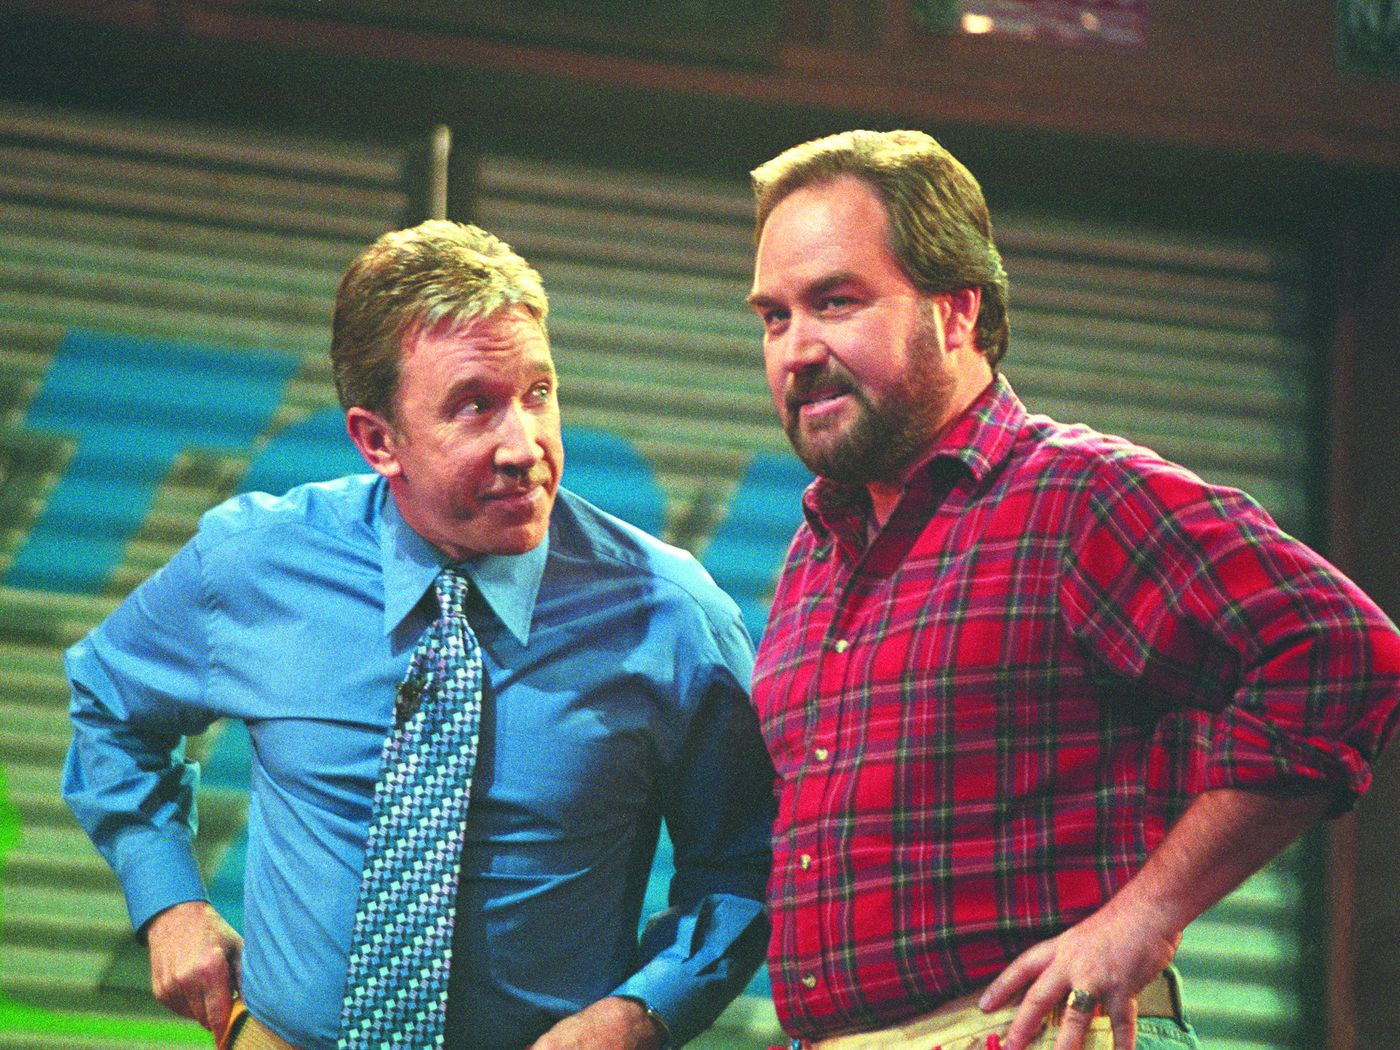 Assembly Required Tim Allen Richard Karn To Reunite For History Channel Show Deseret News